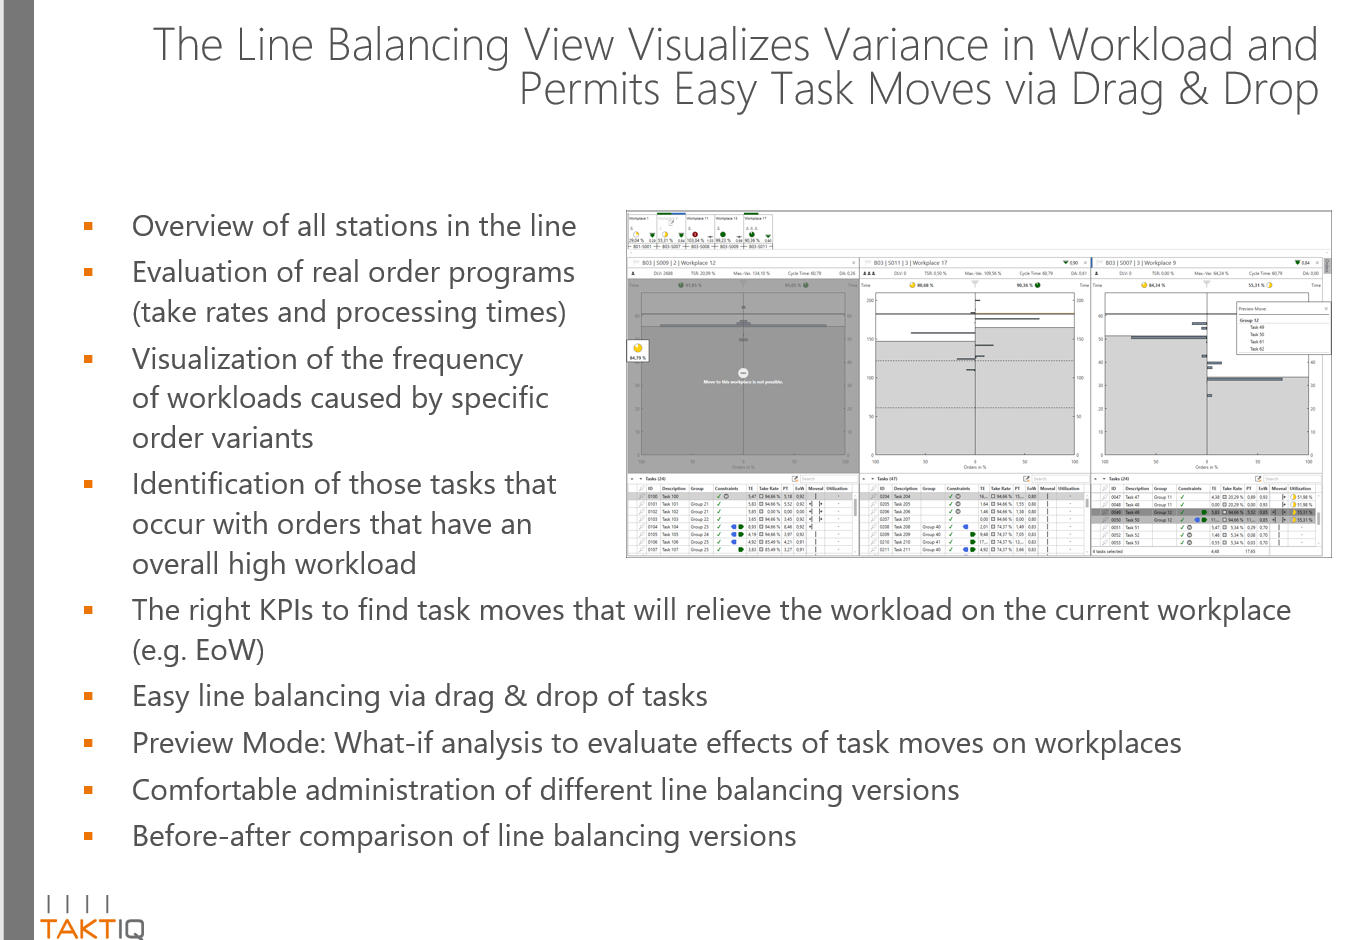 Slide about easy line balancing via drag and drop